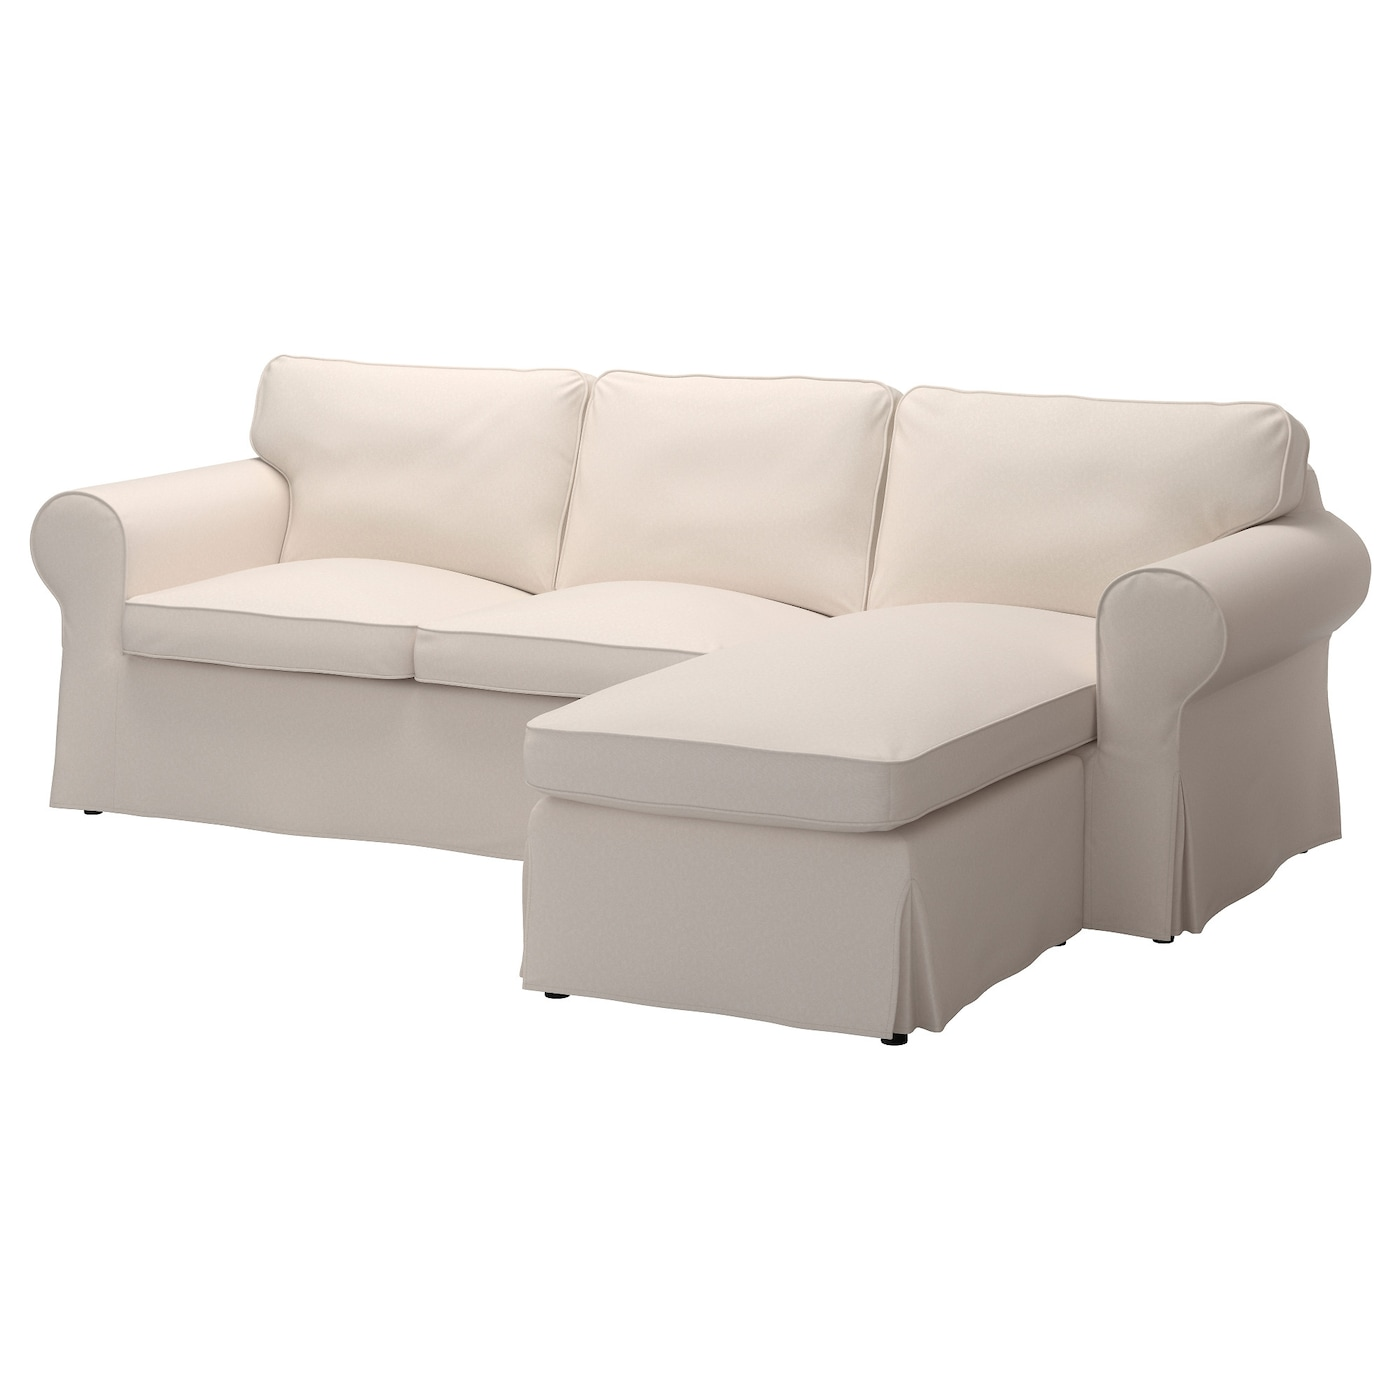 Ektorp cover two seat sofa w chaise longue lofallet beige - Sofa rinconera con chaise longue ...